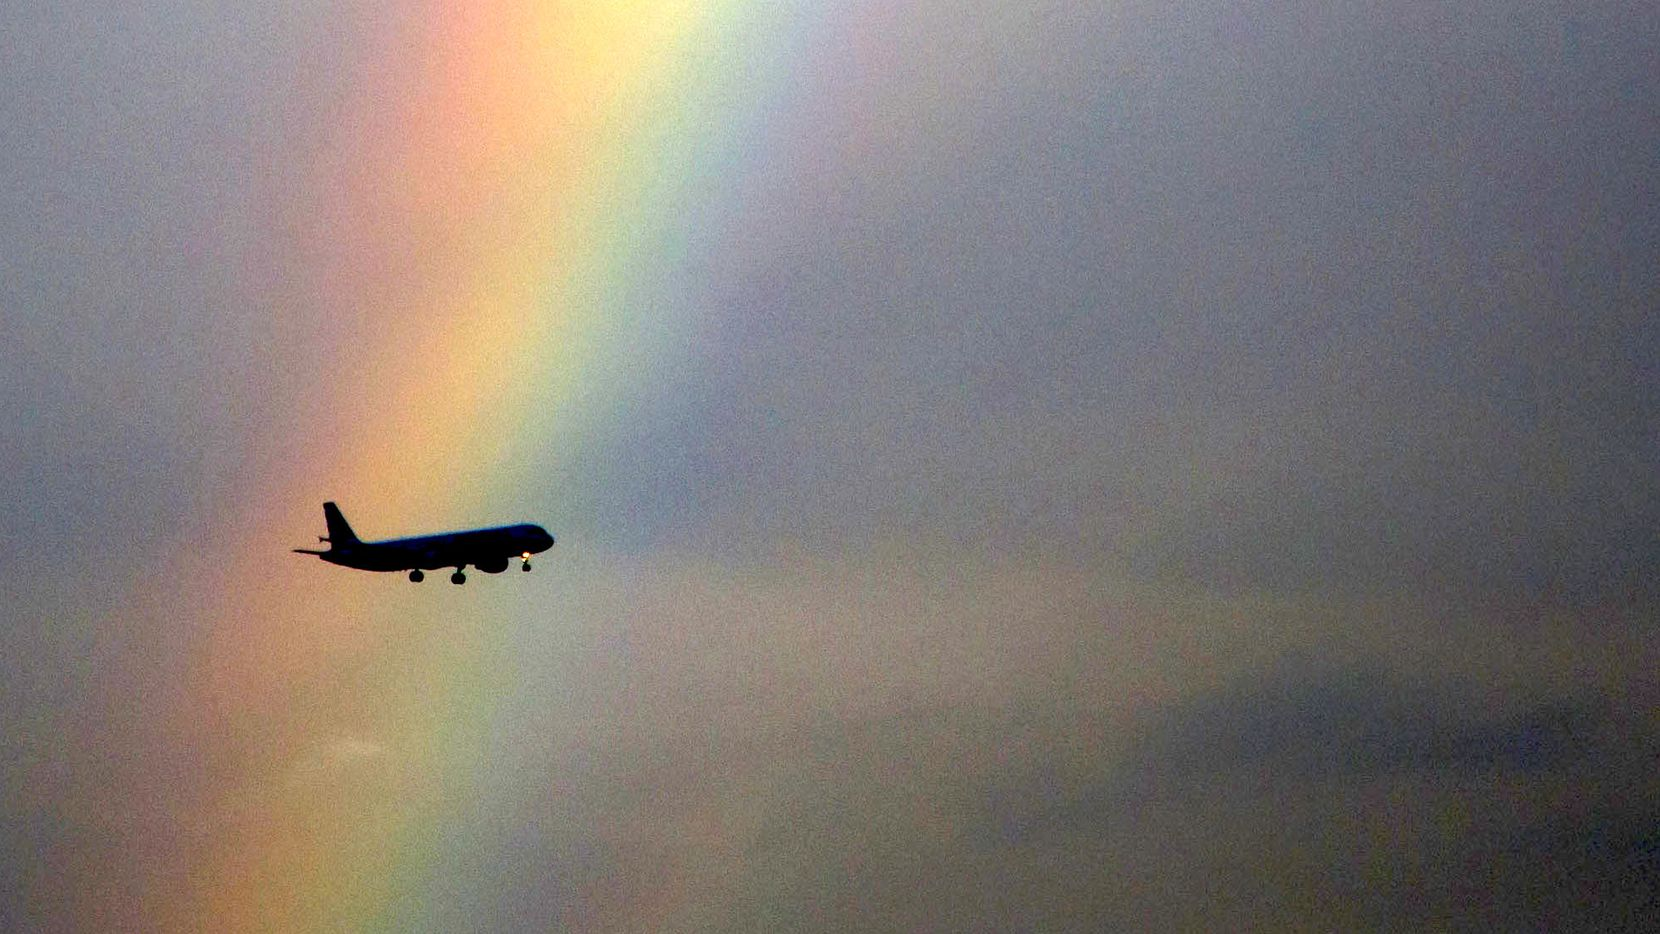 An American Airlines flight passes in front of partial rainbow on approach to landing at Dallas/Fort Worth International Airport on Tuesday, Oct. 3, 2017.